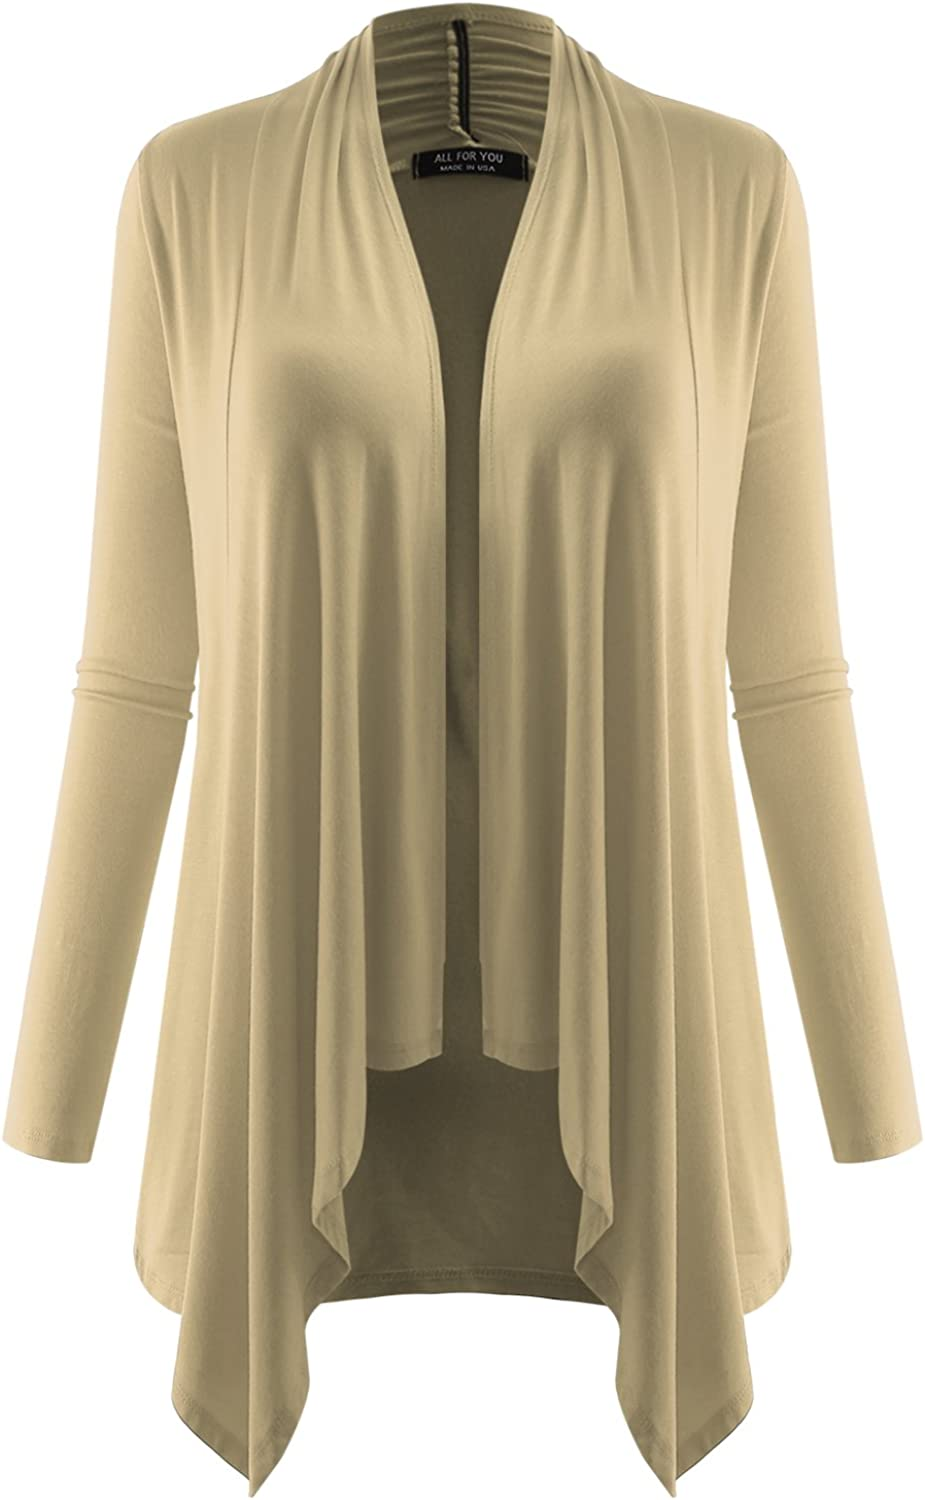 All for You Women's Soft Drape Cardigan Long Sleeve Made in USA